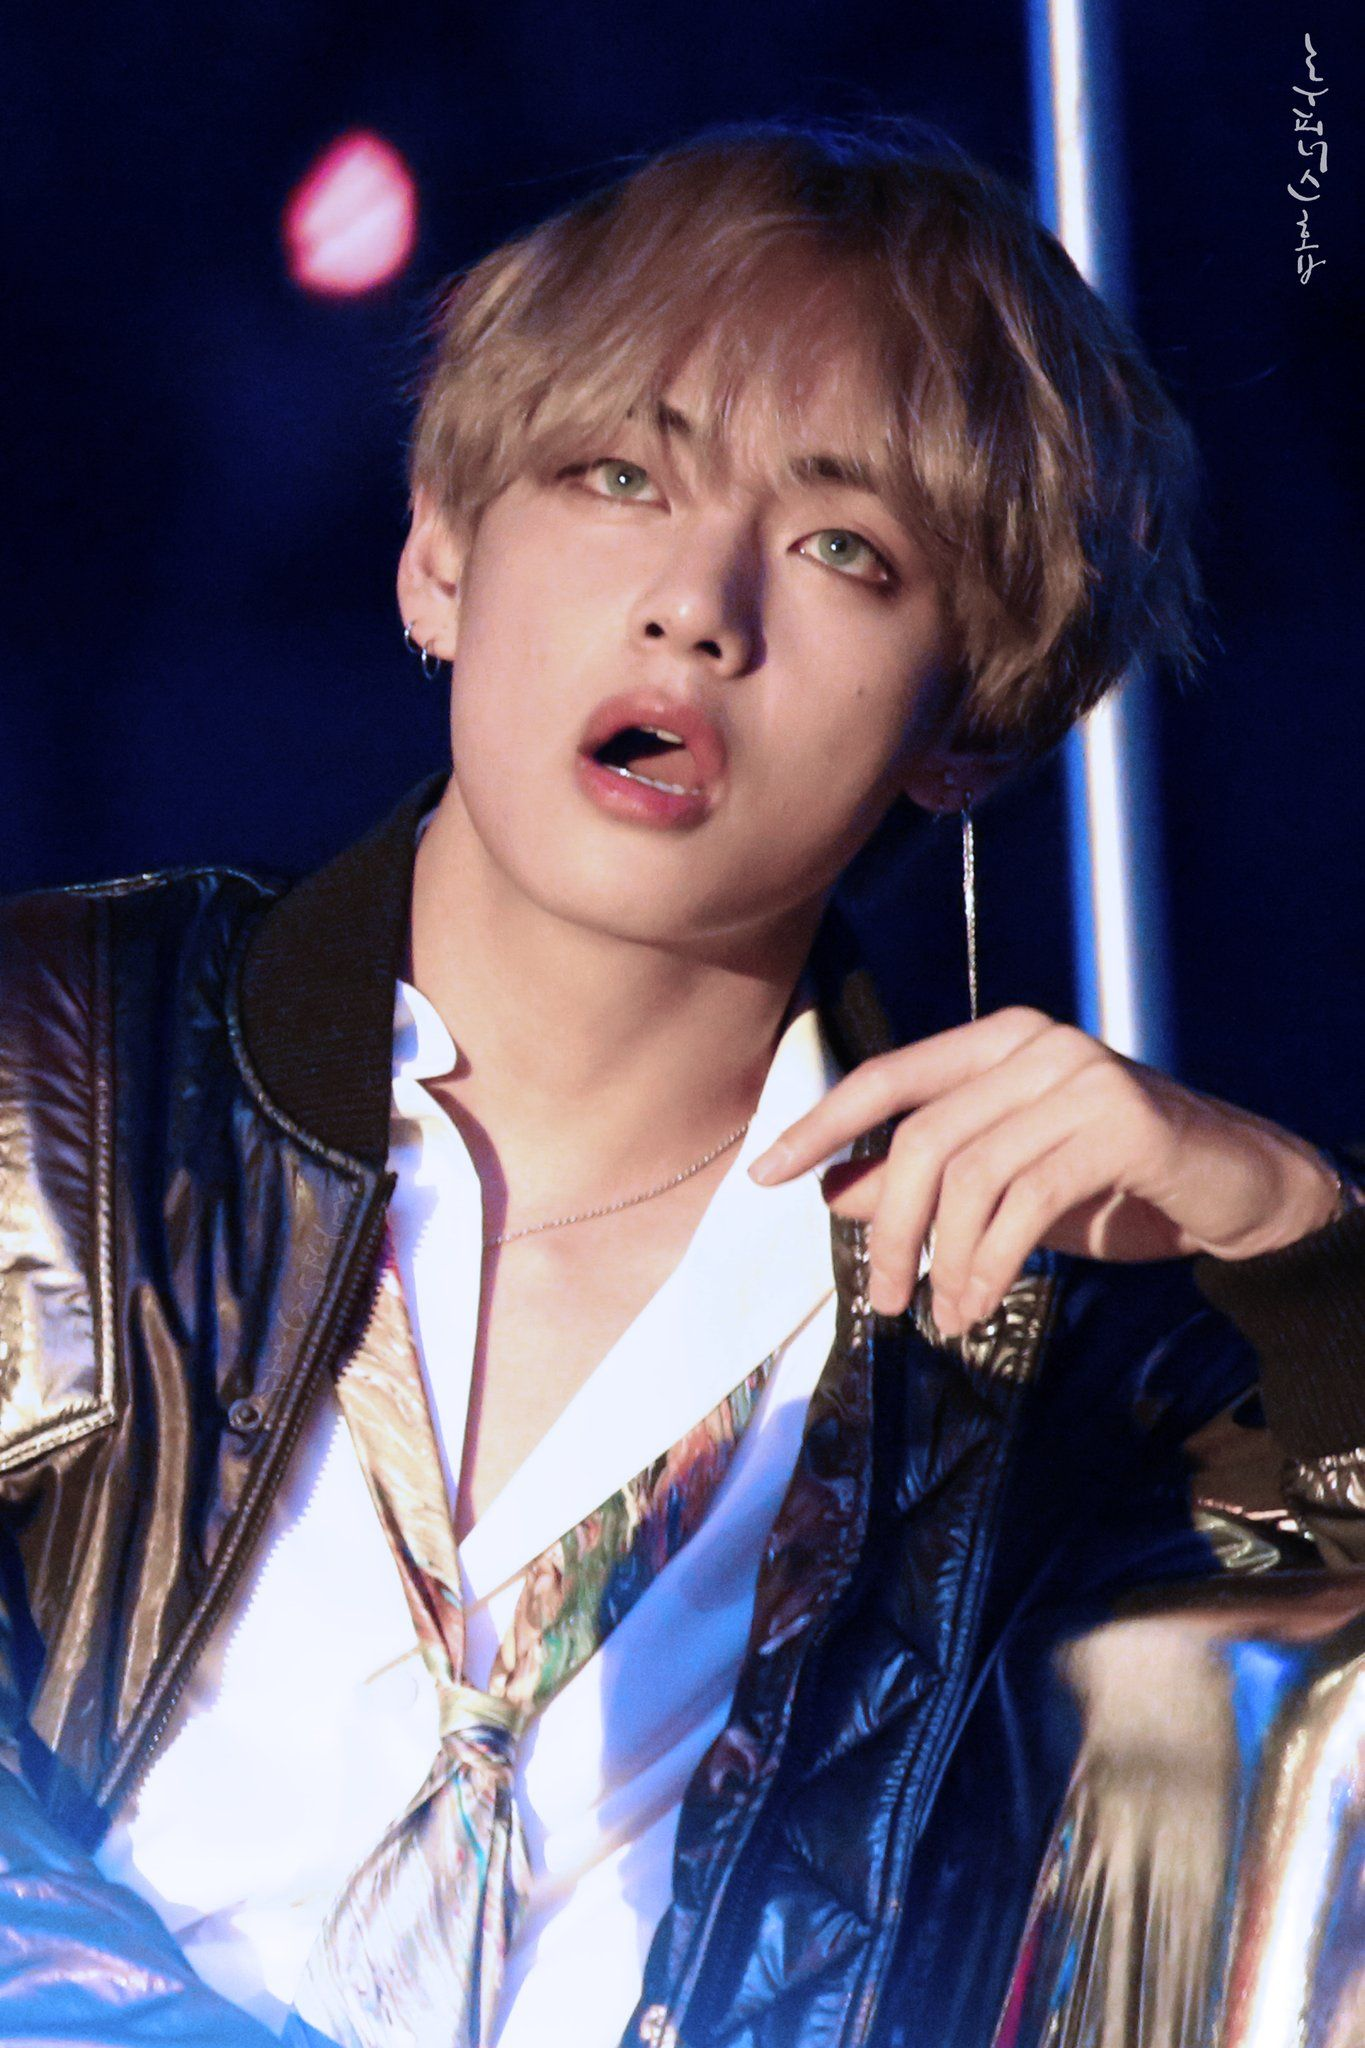 Another one of Kim Taehyung's gorgeous looks! Looking seductive as always! I'm speechless!! 💜🔥😍😜🤤🔥💜